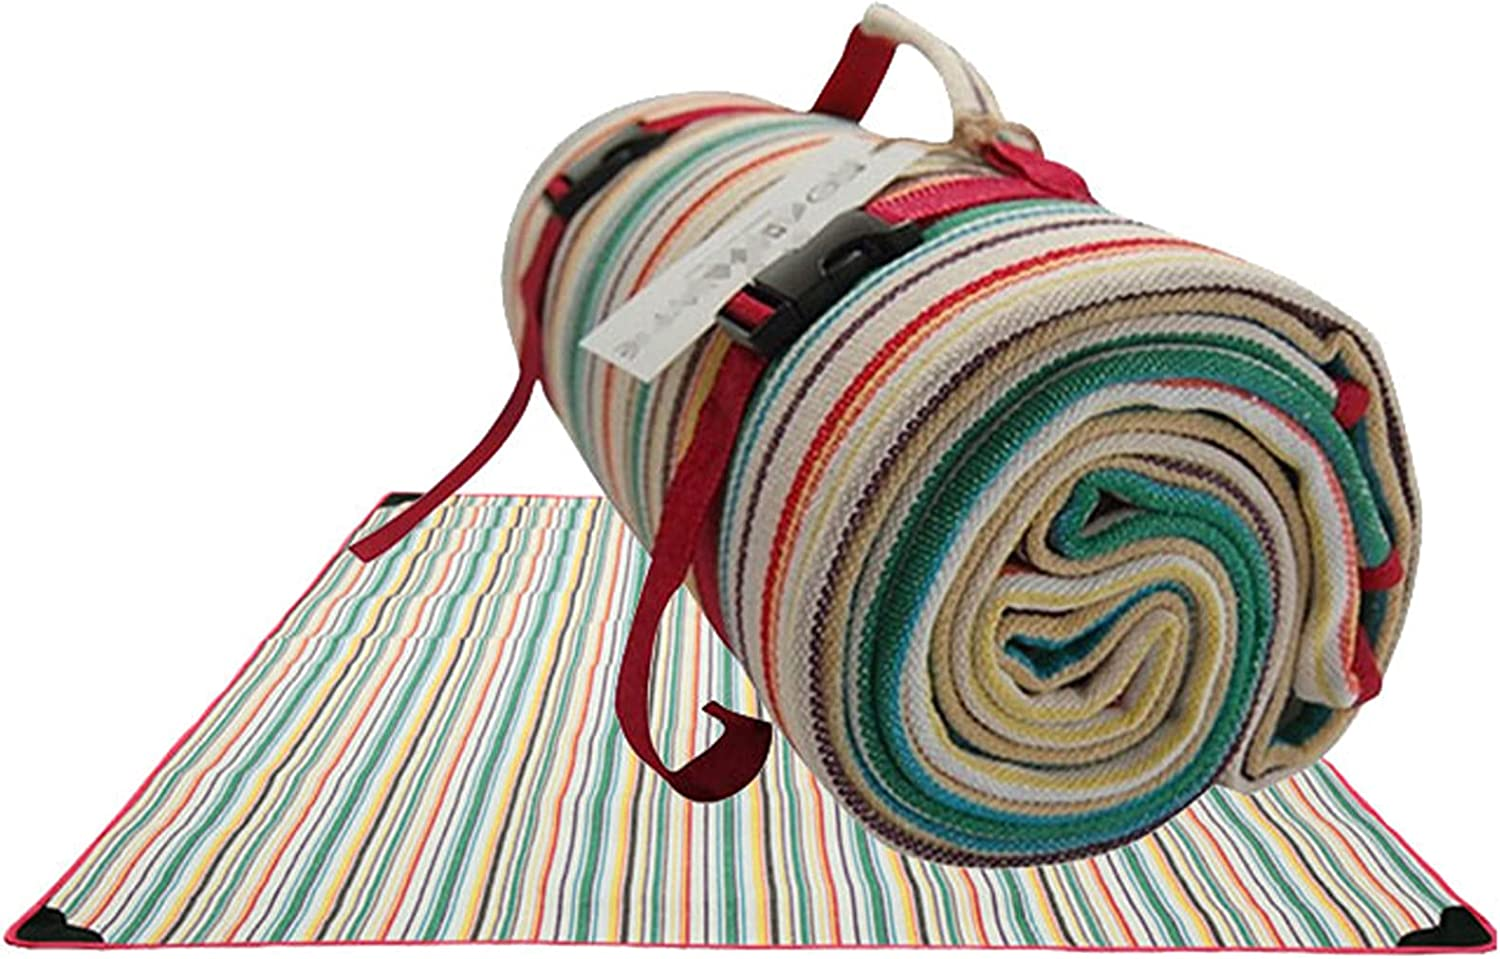 Jacksonville Challenge the lowest price Mall FKDG Picnic Blanket Large Waterproof Moisture Soft Backing Proof